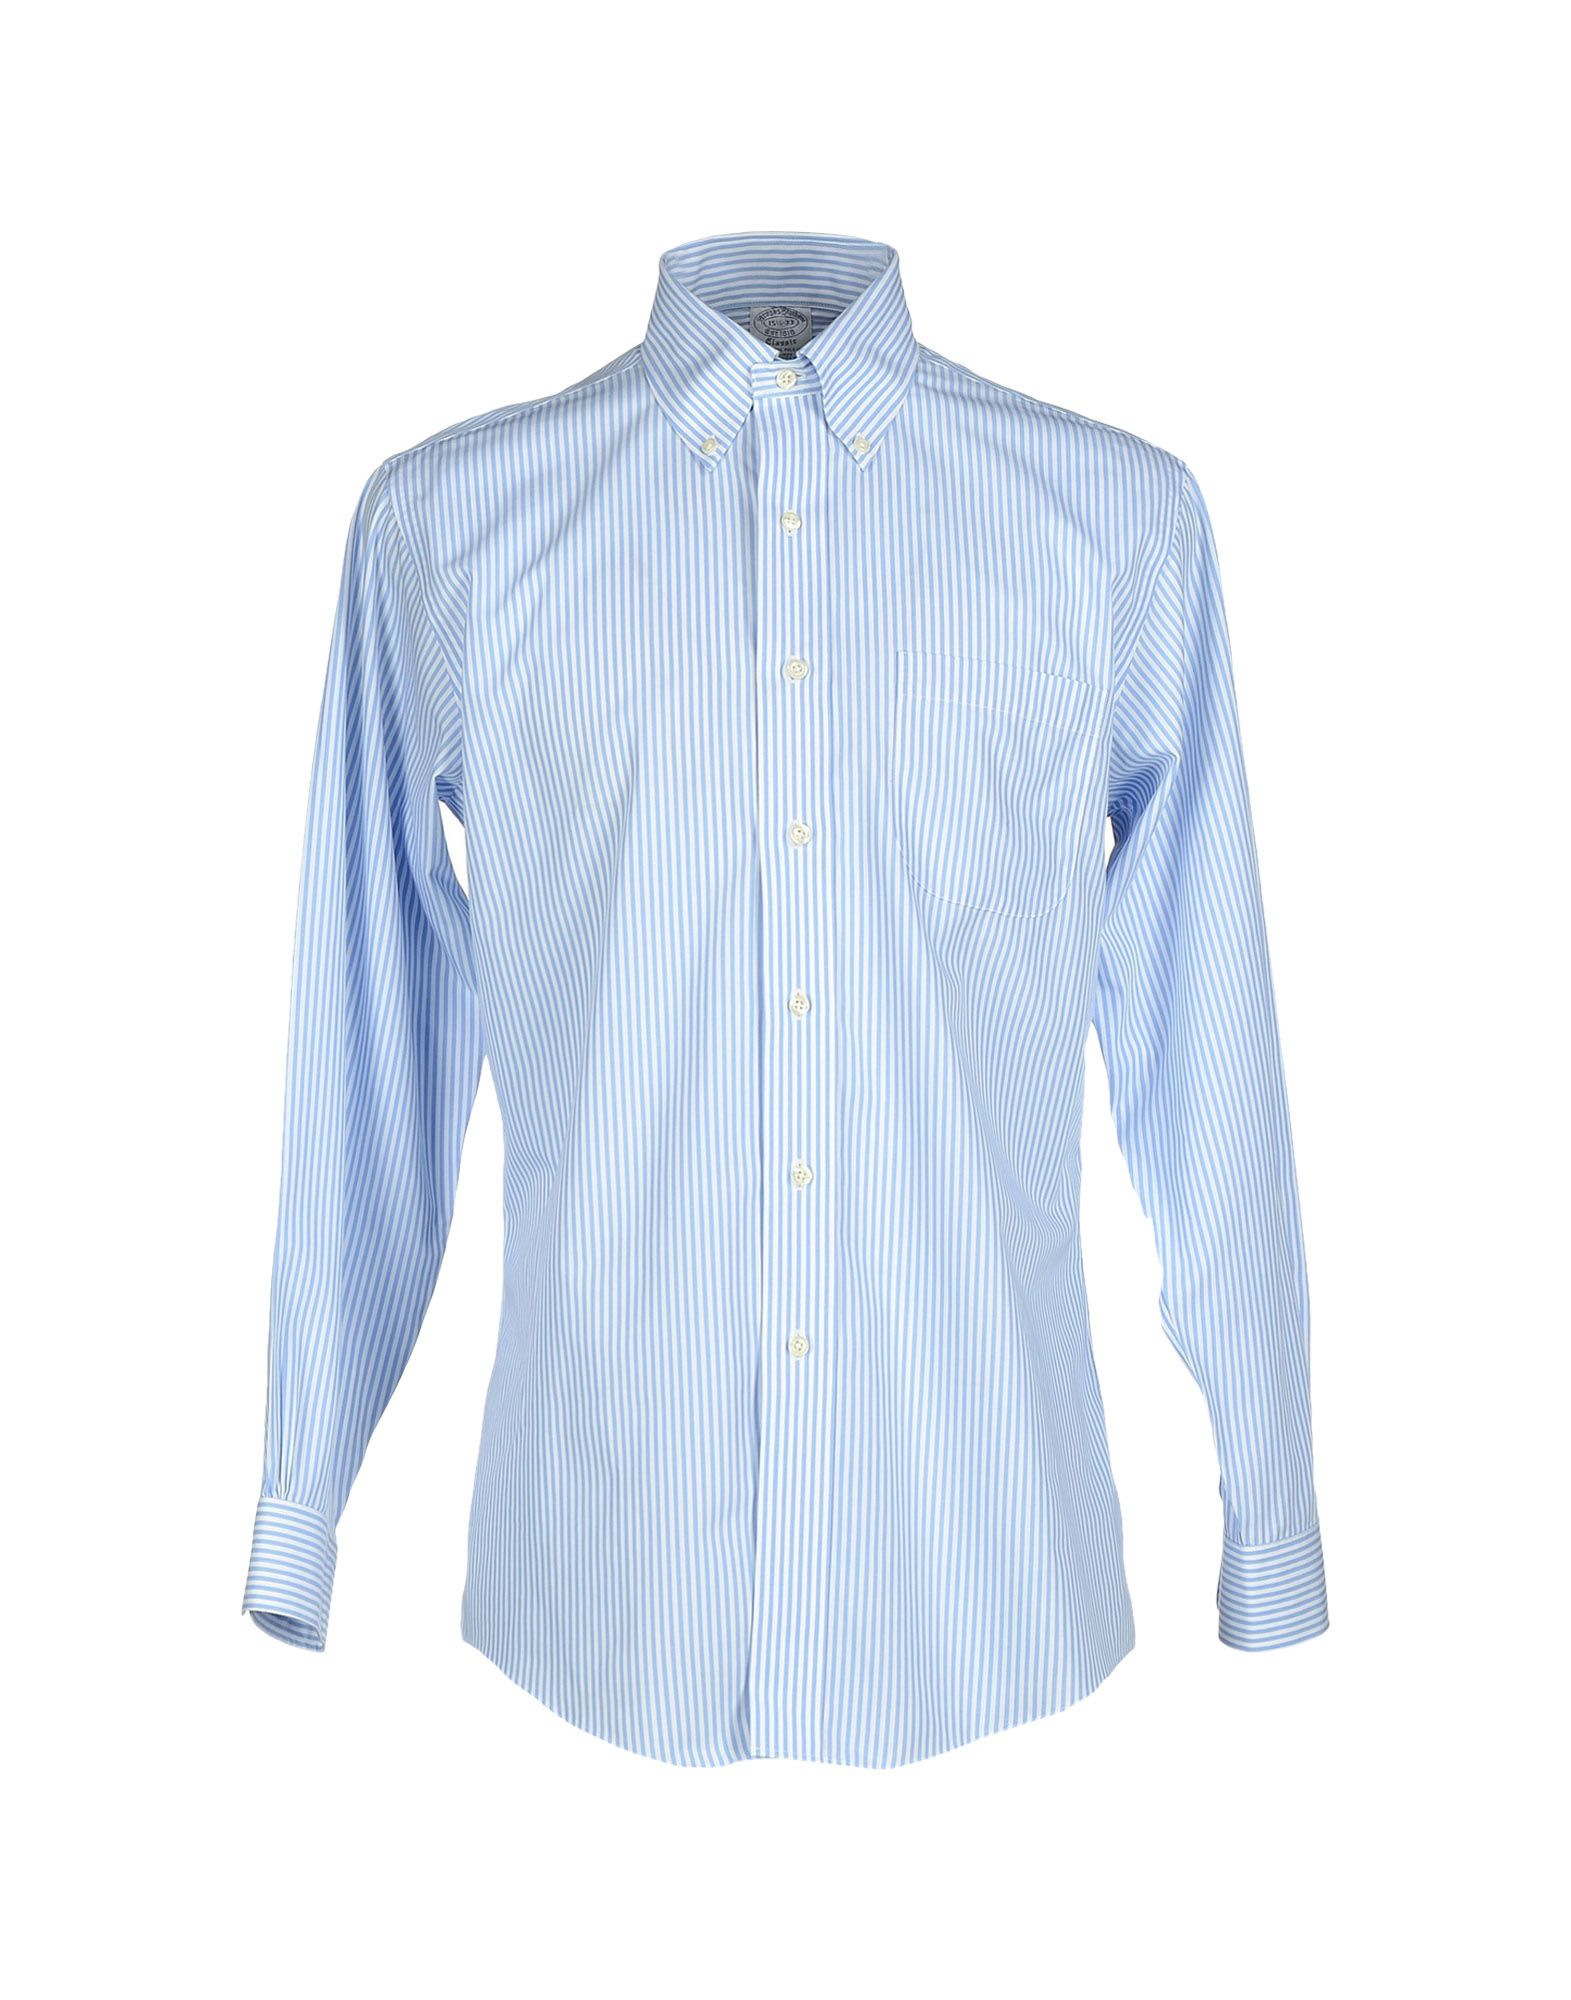 Lyst brooks brothers shirt in blue for men for Brooks brothers tall shirts